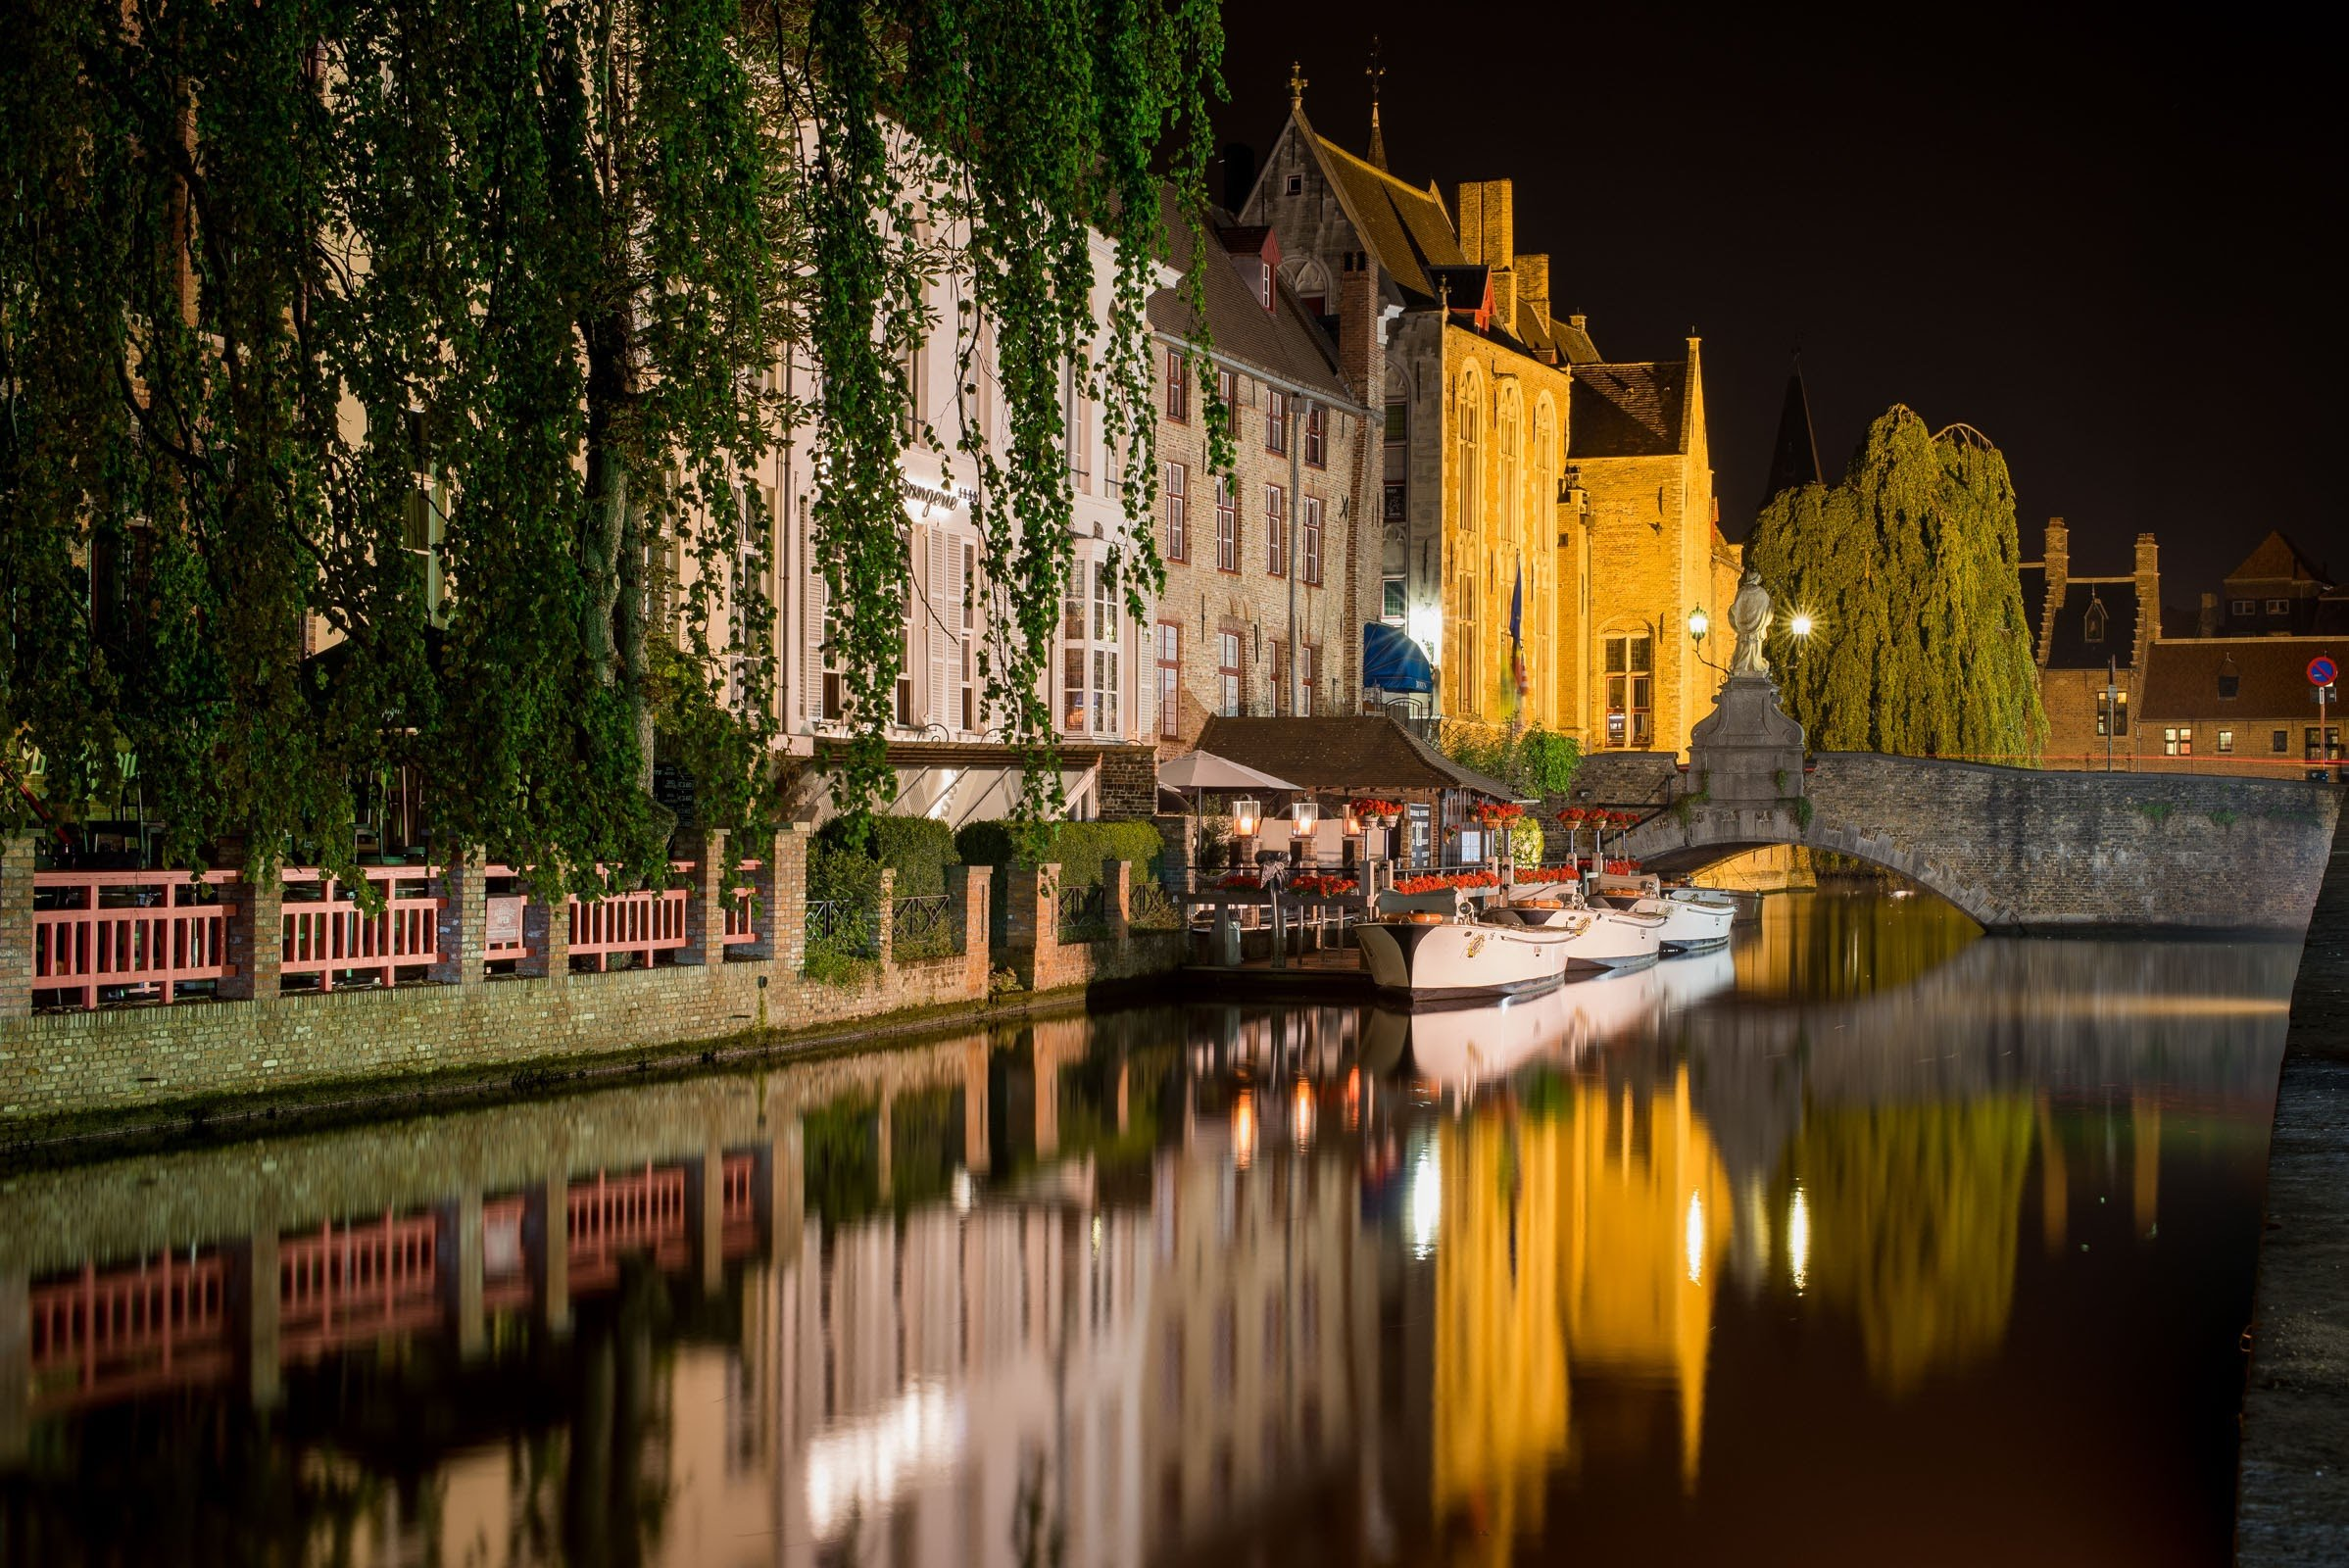 17 Easy Ways to Save Money on Your Next Trip - Bruges, Belgium